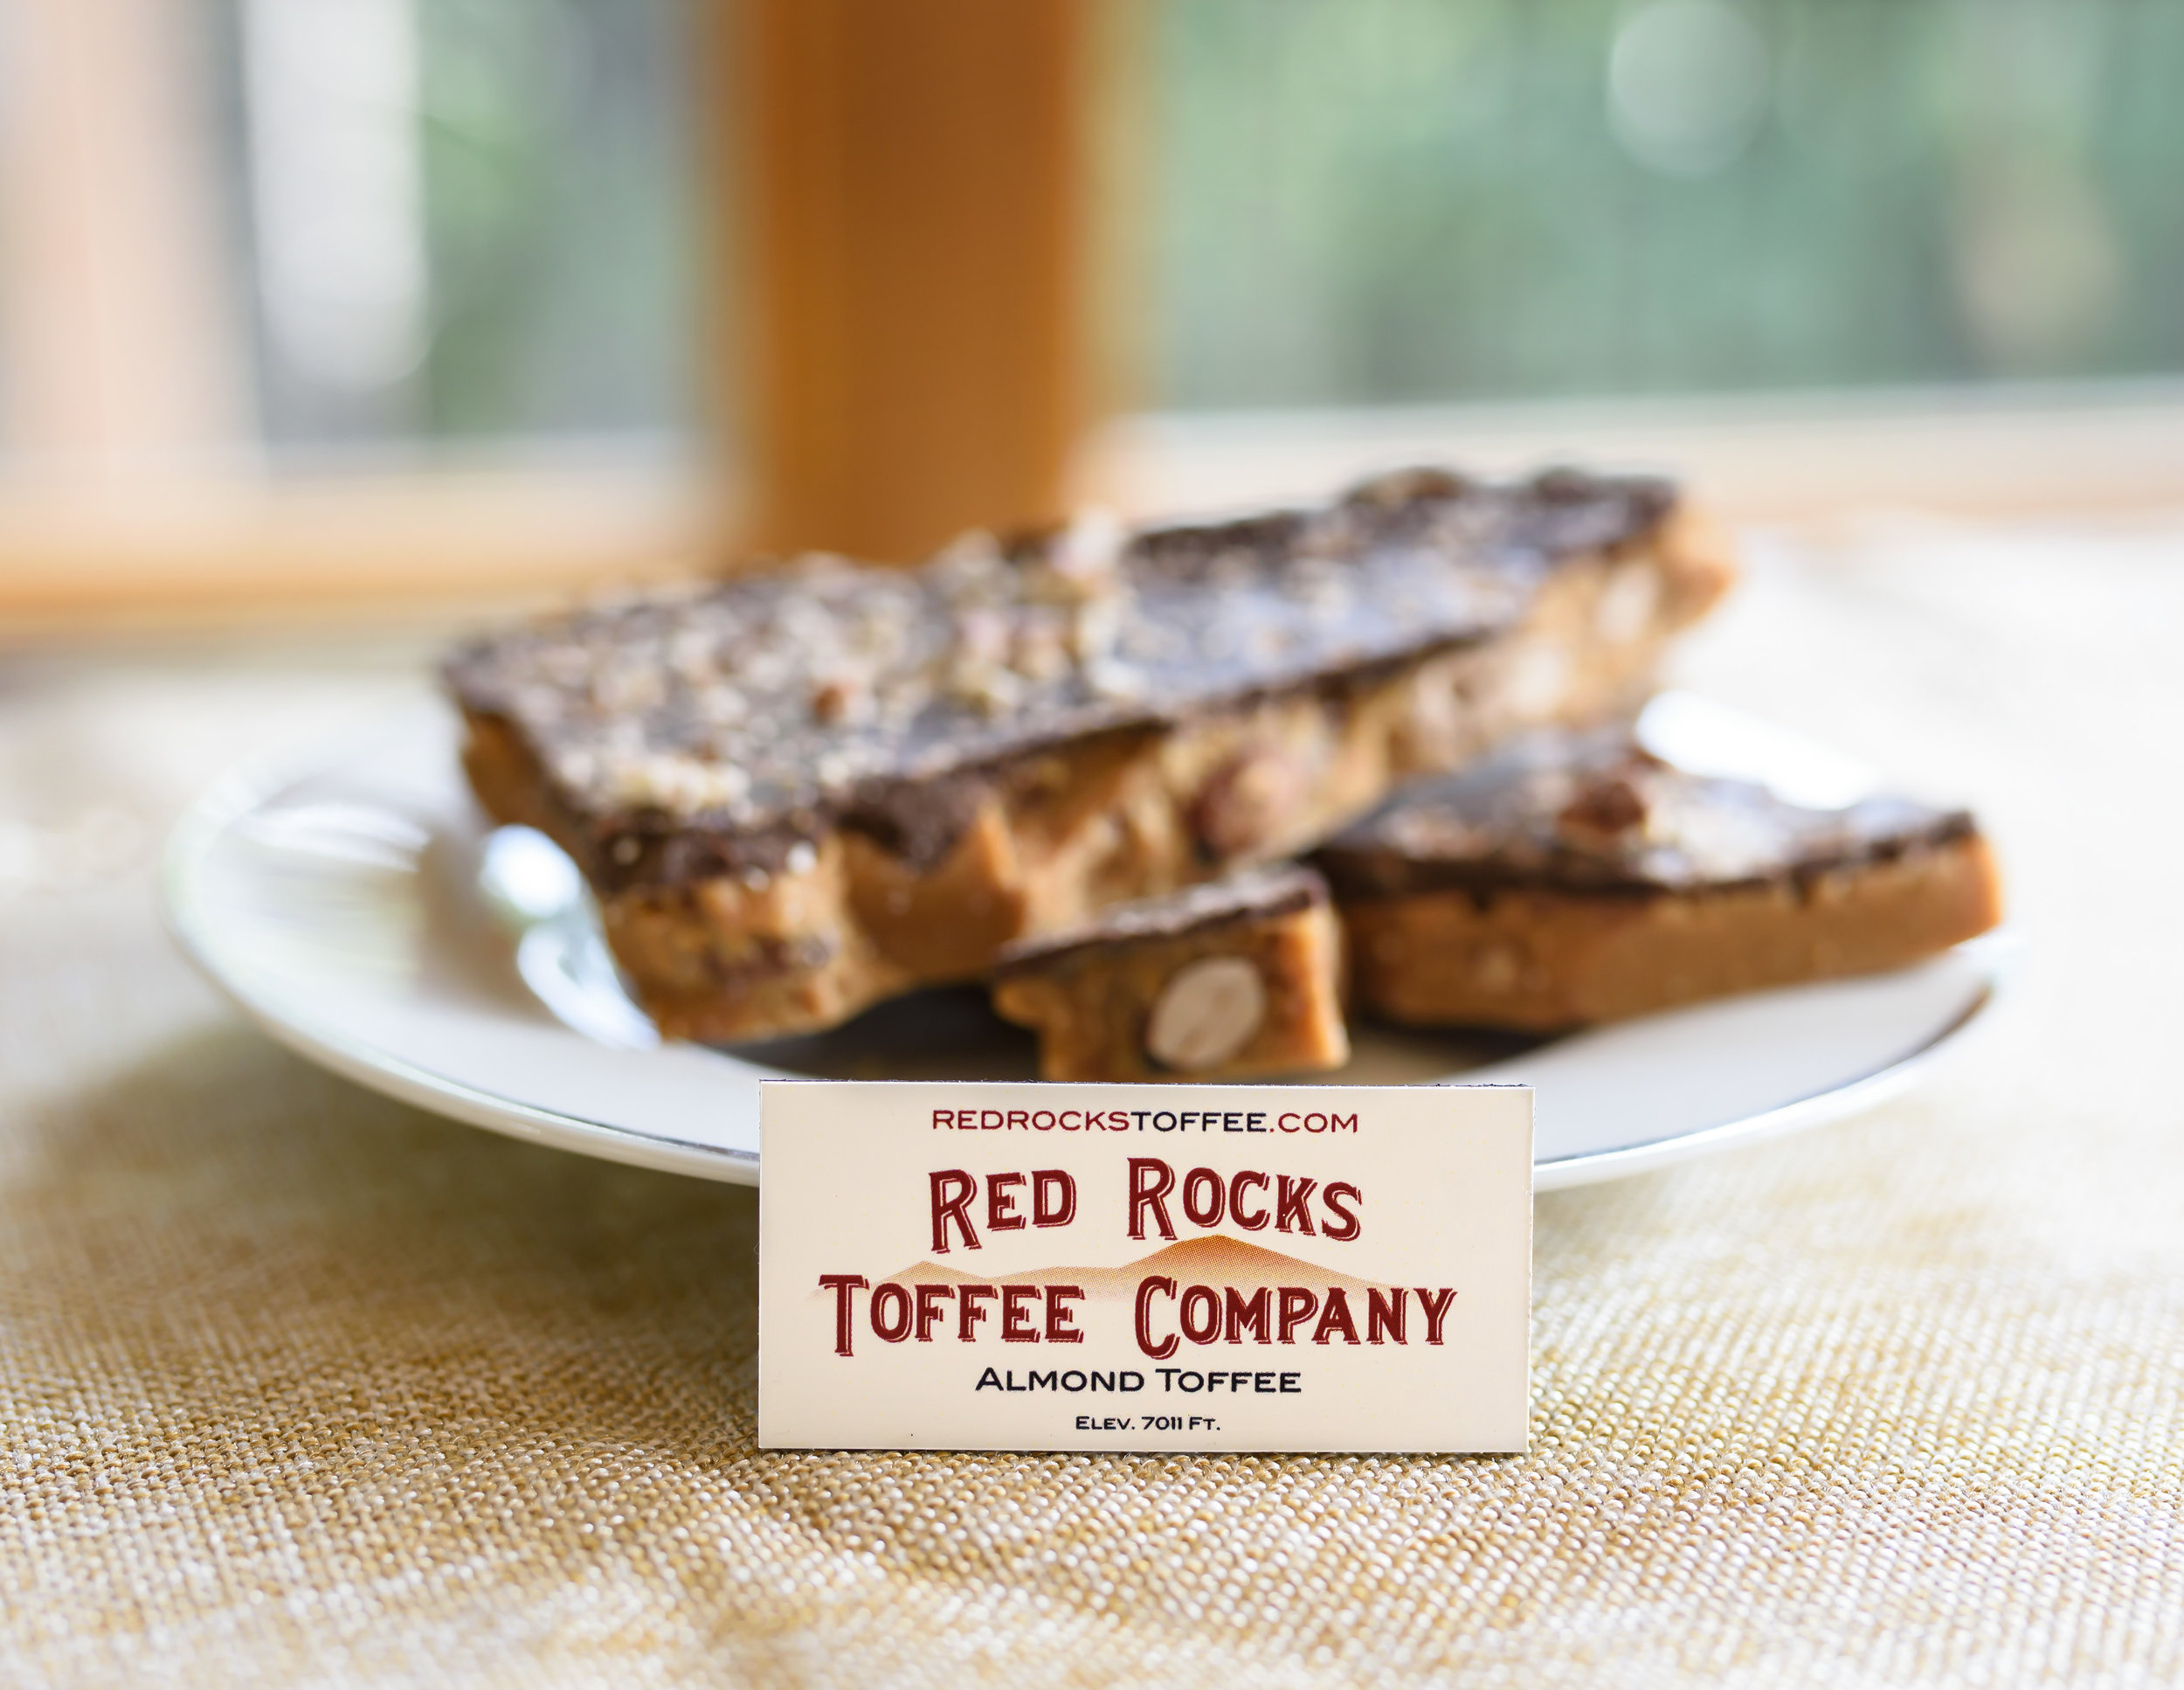 Toffee on Plate with Company Sign .jpg